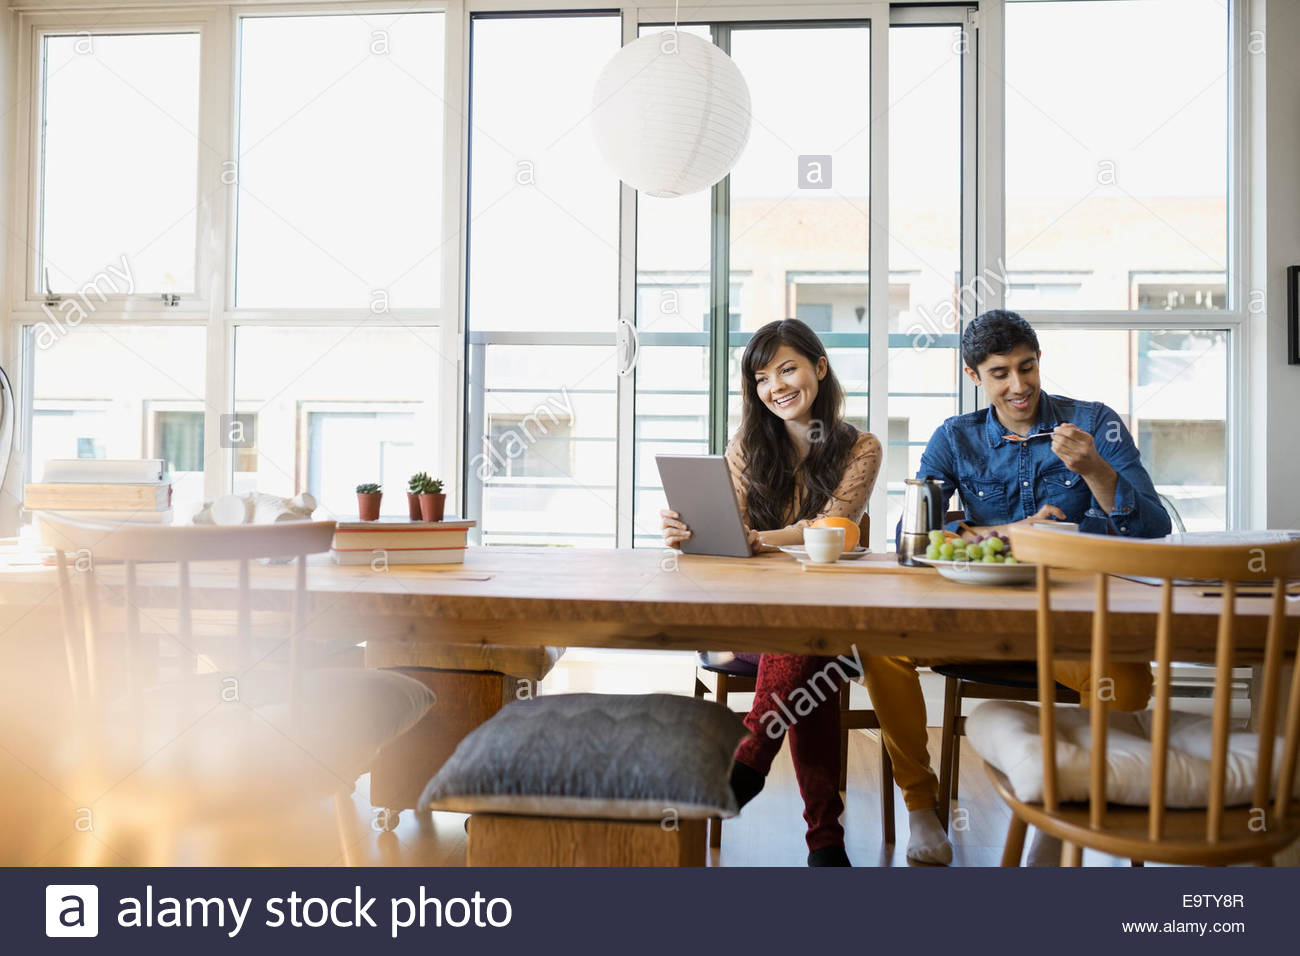 Couple using digital tablet and eating at table - Stock Image